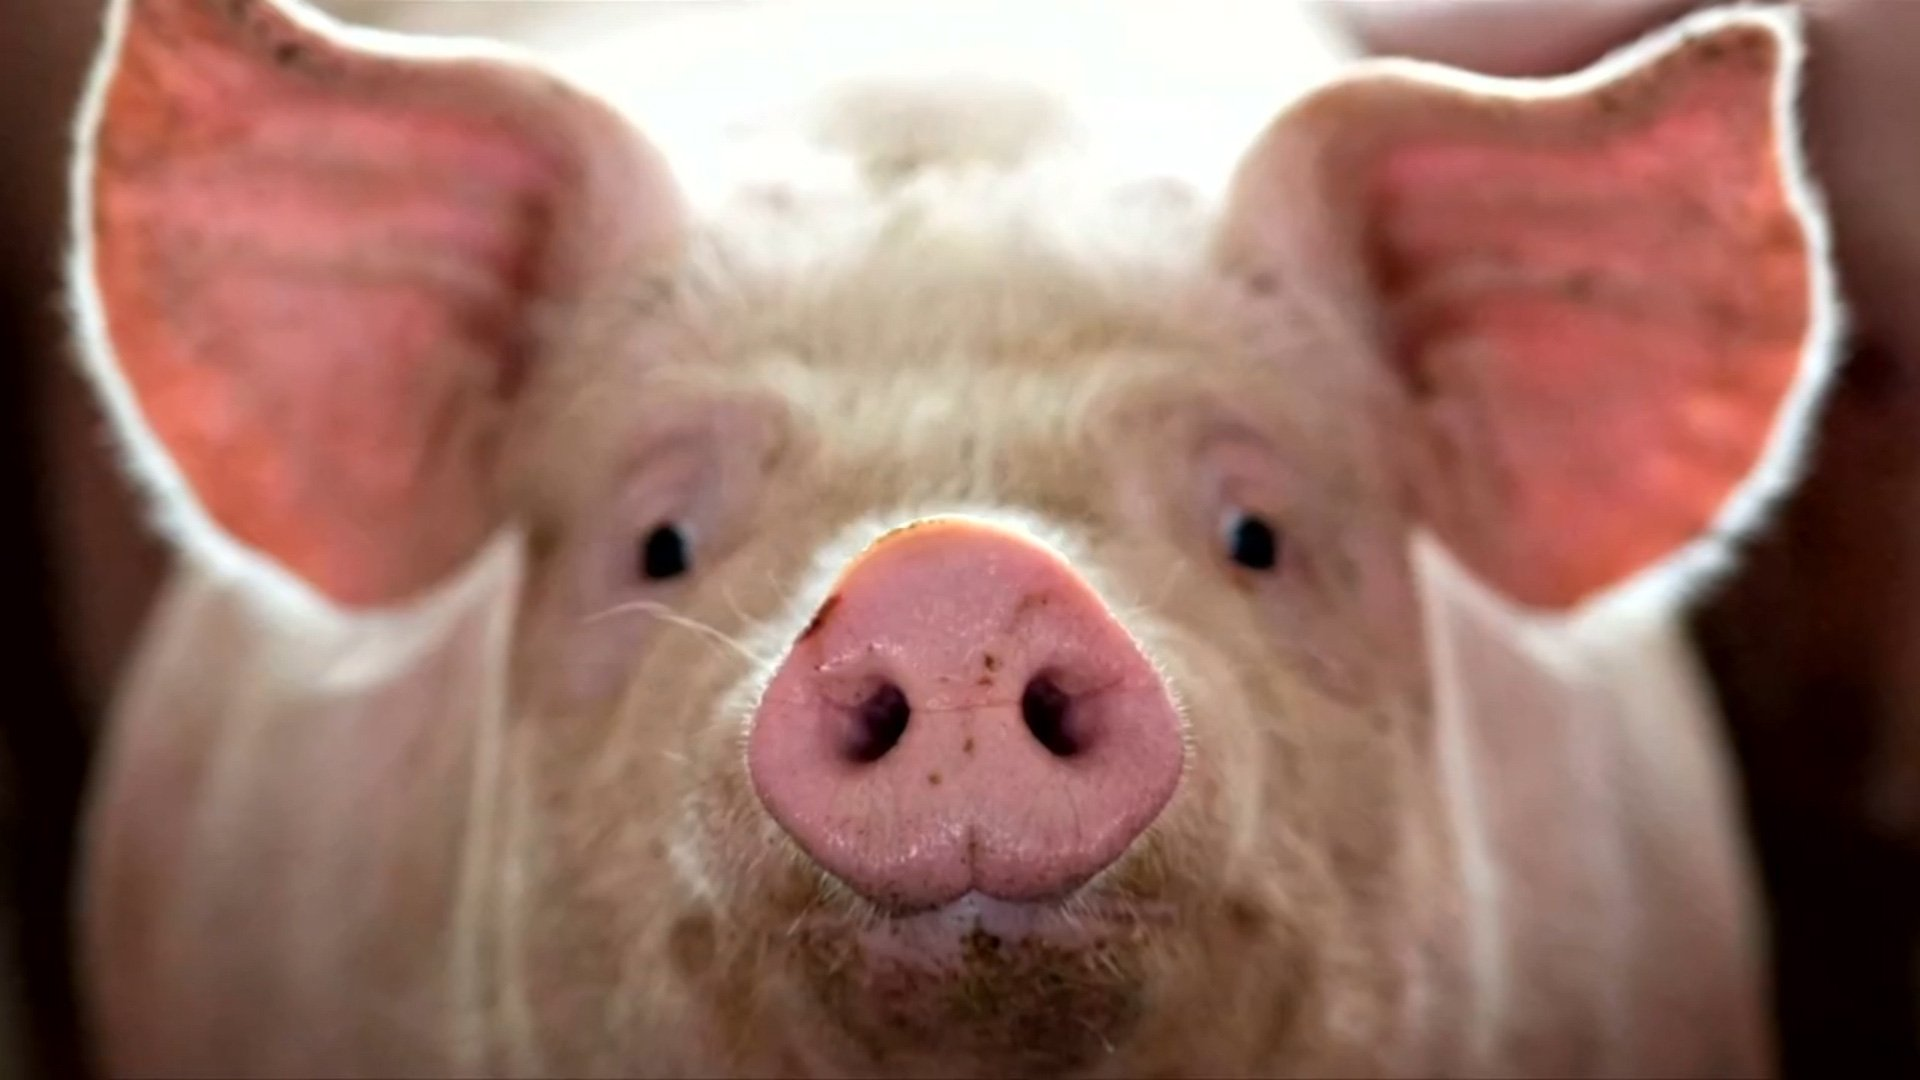 Live hog price today 12/10: The downtrend continues 1